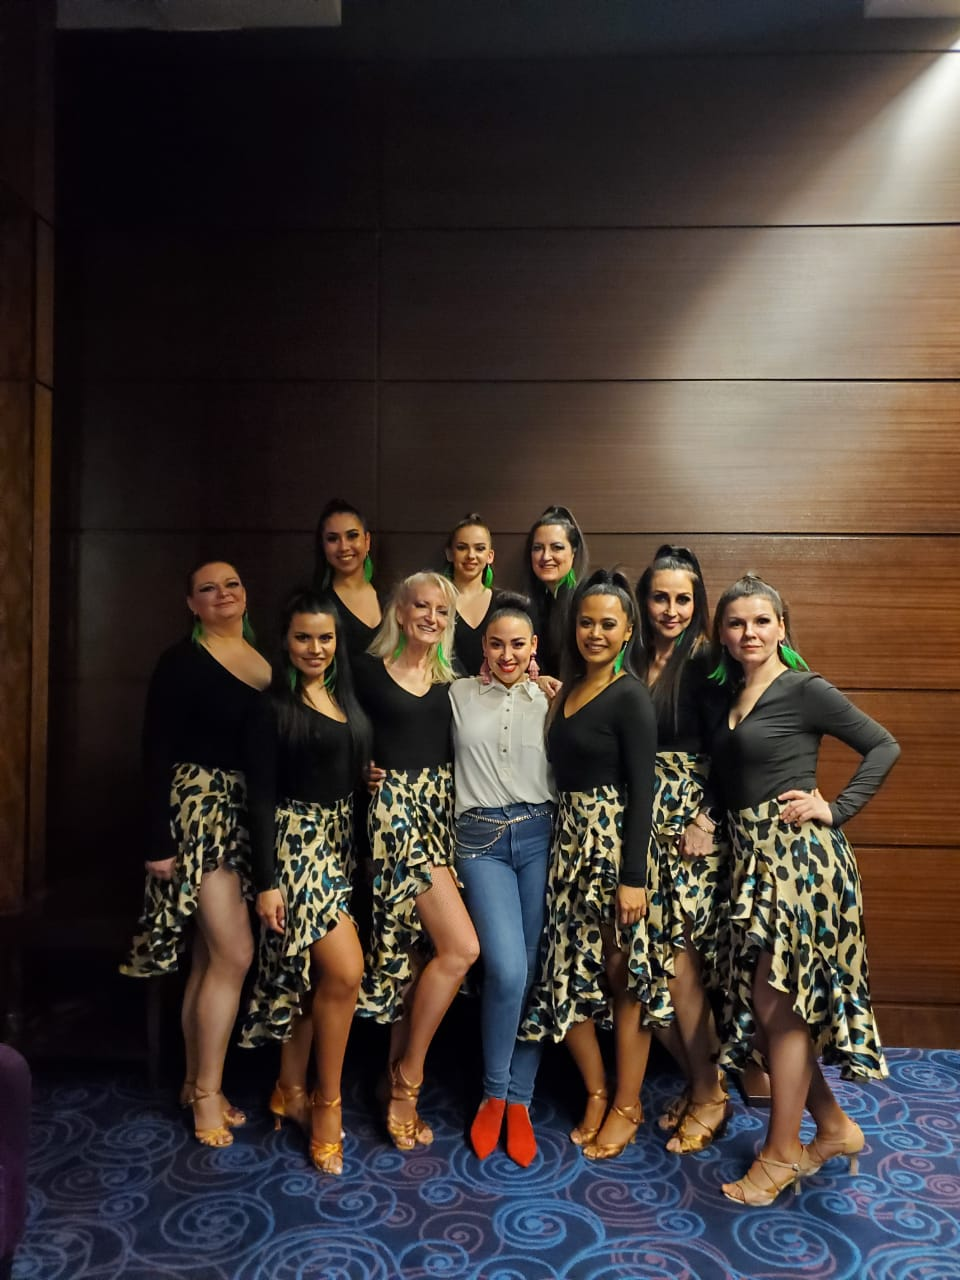 DV's Ladies Student Performance Group